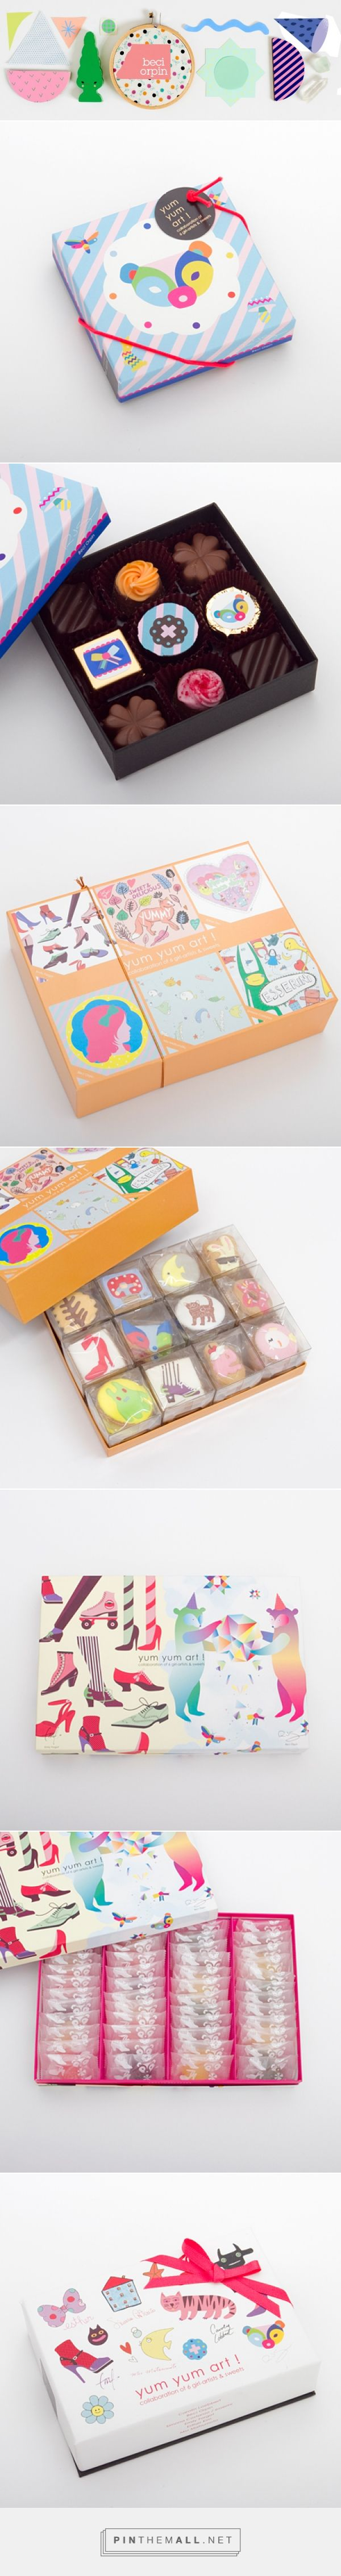 sweets for isetan via Beci Orpin's Blog curated by Packaging Diva PD. How cute is this yum yum chocolate packaging : )